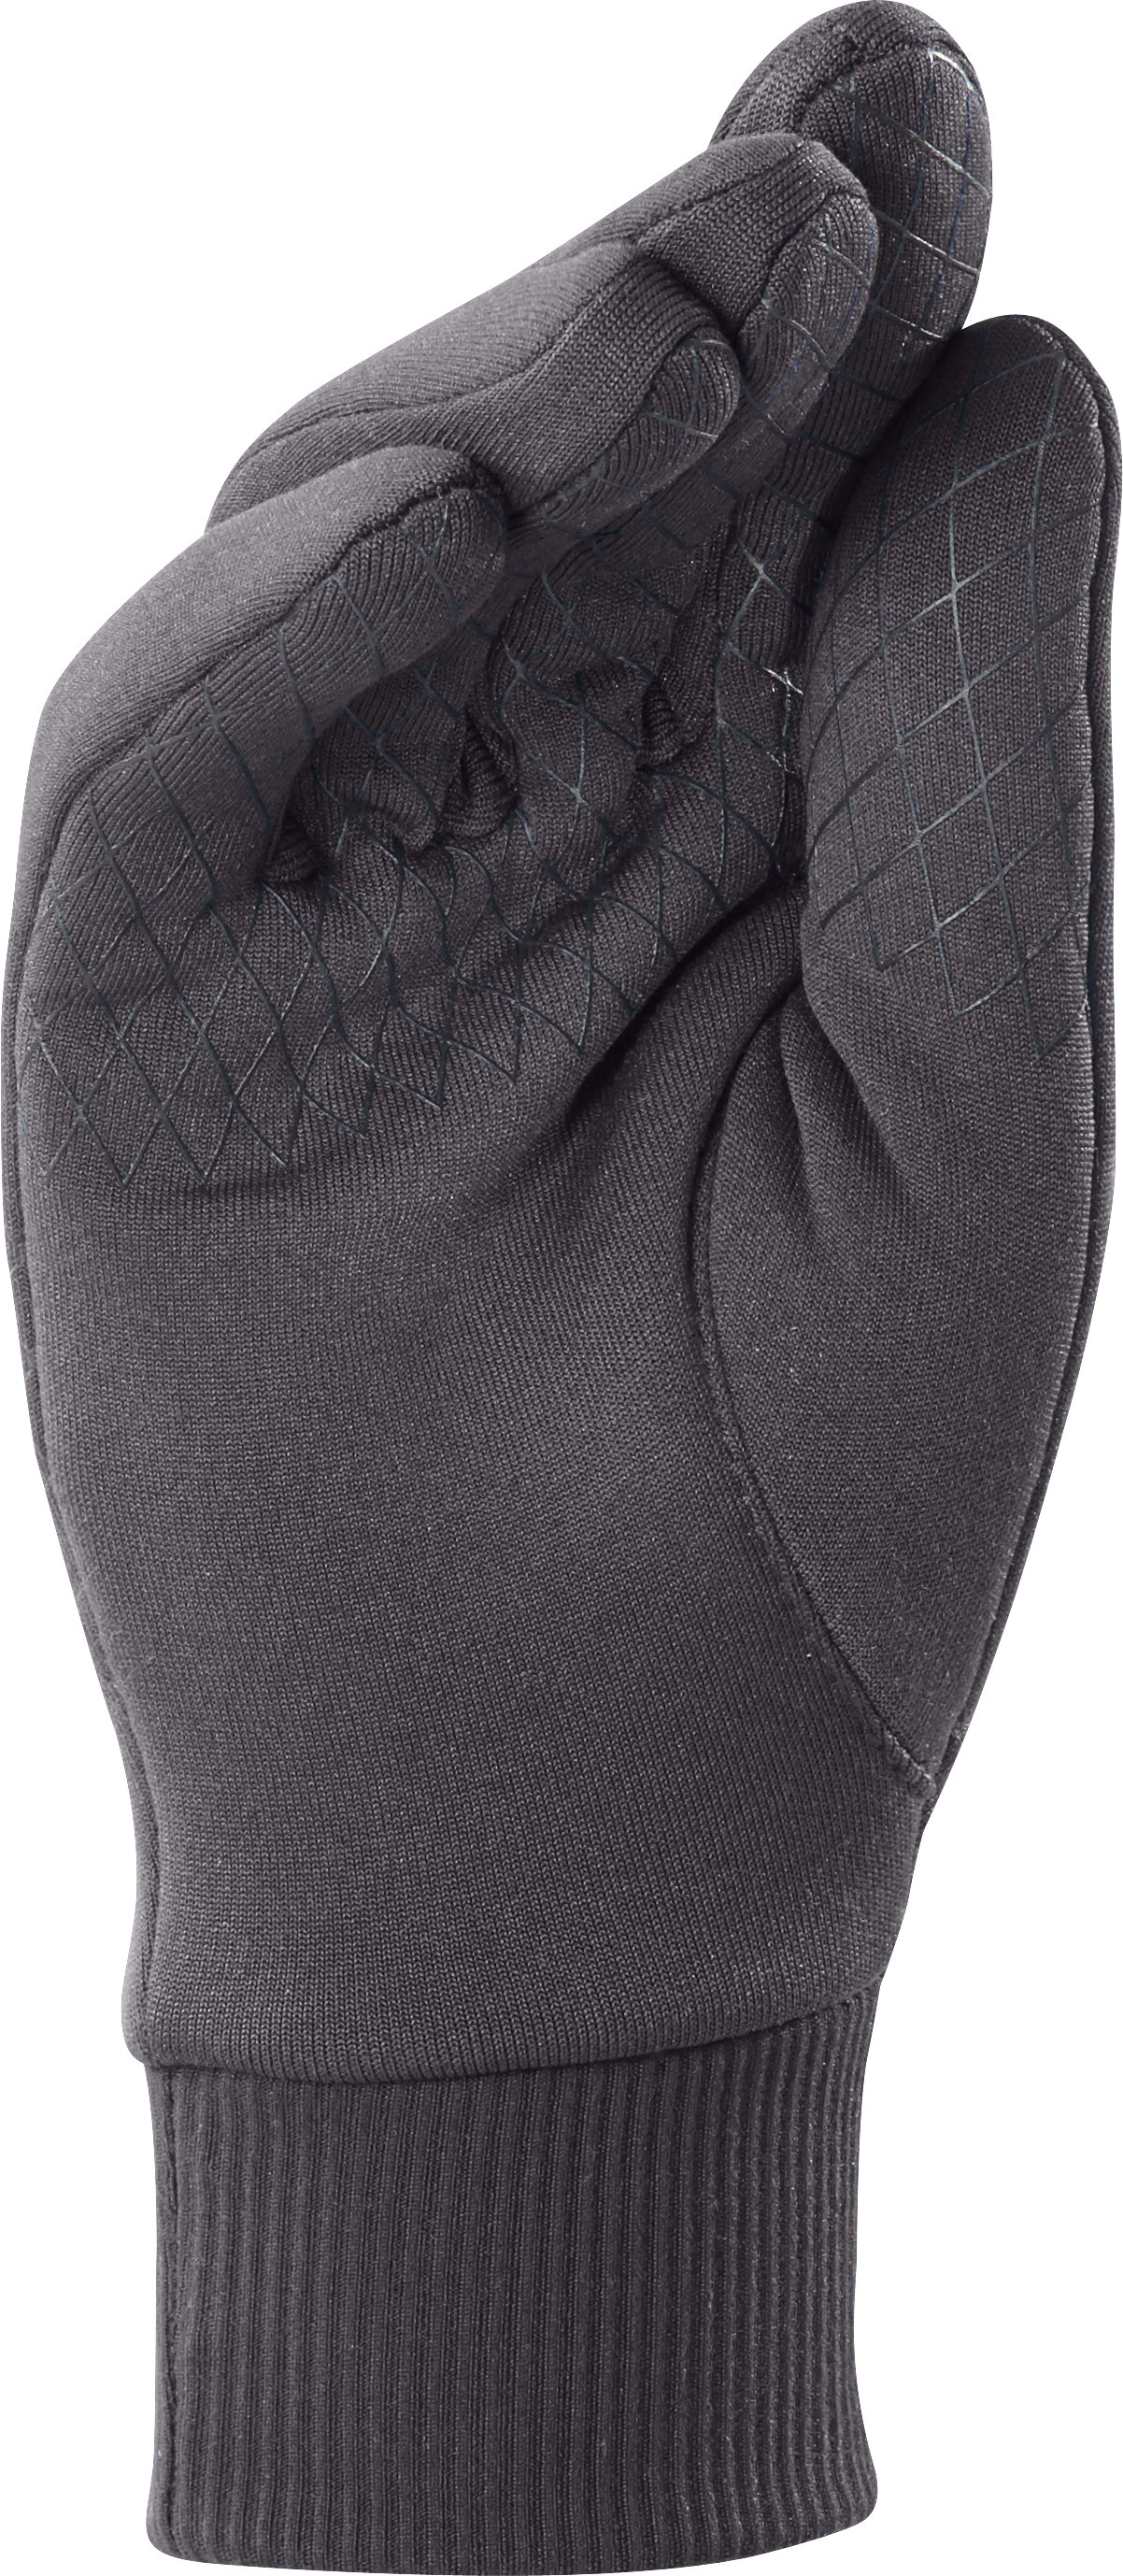 Women's UA ColdGear® Infrared Core Liner Glove, PHANTOM GRAY, undefined